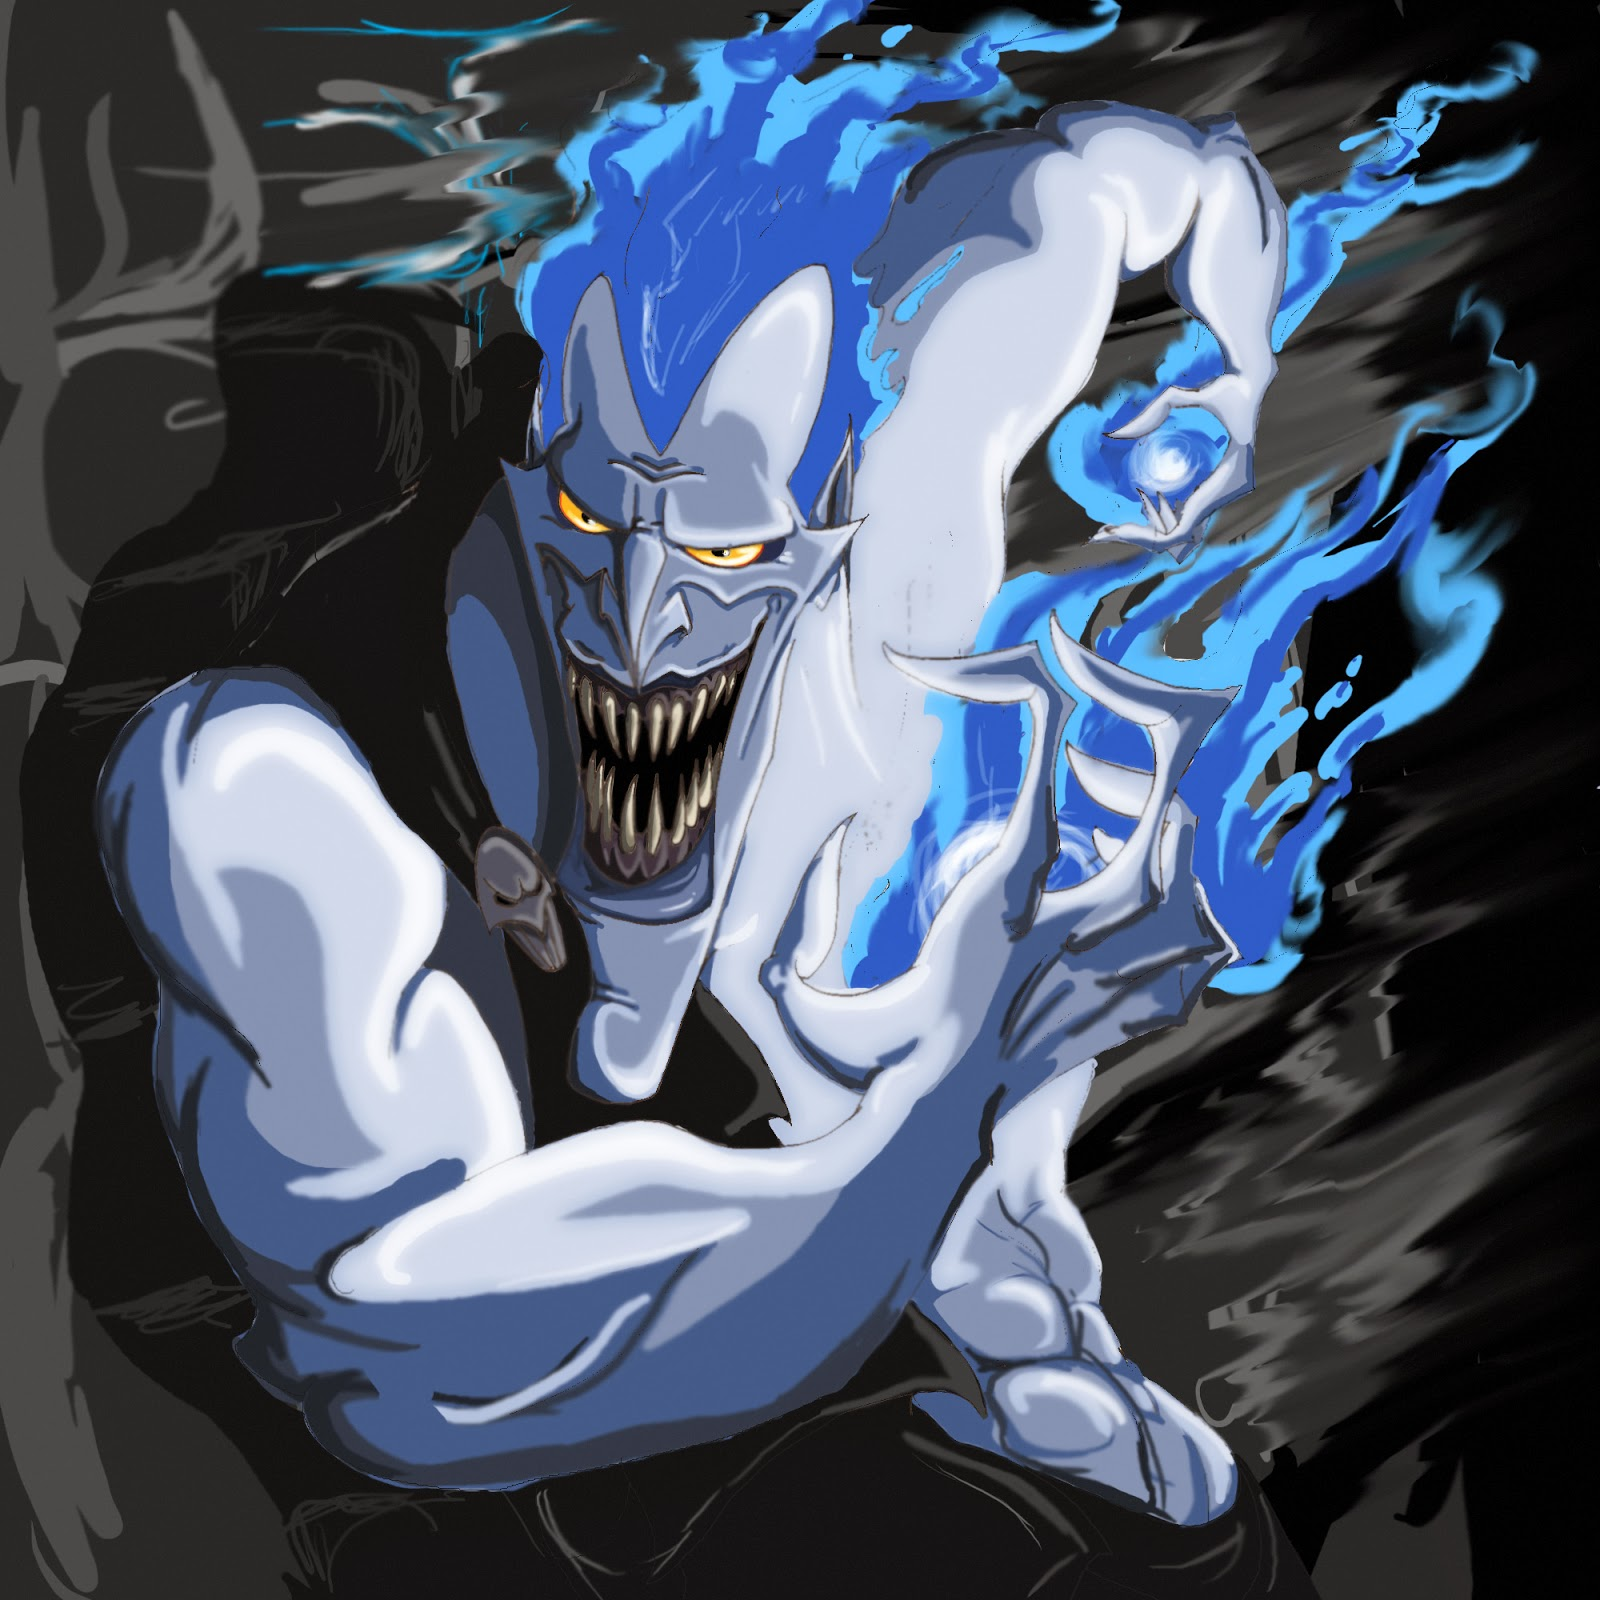 AuthorQuest: Analyzing The Disney Villains: Hades (Hercules